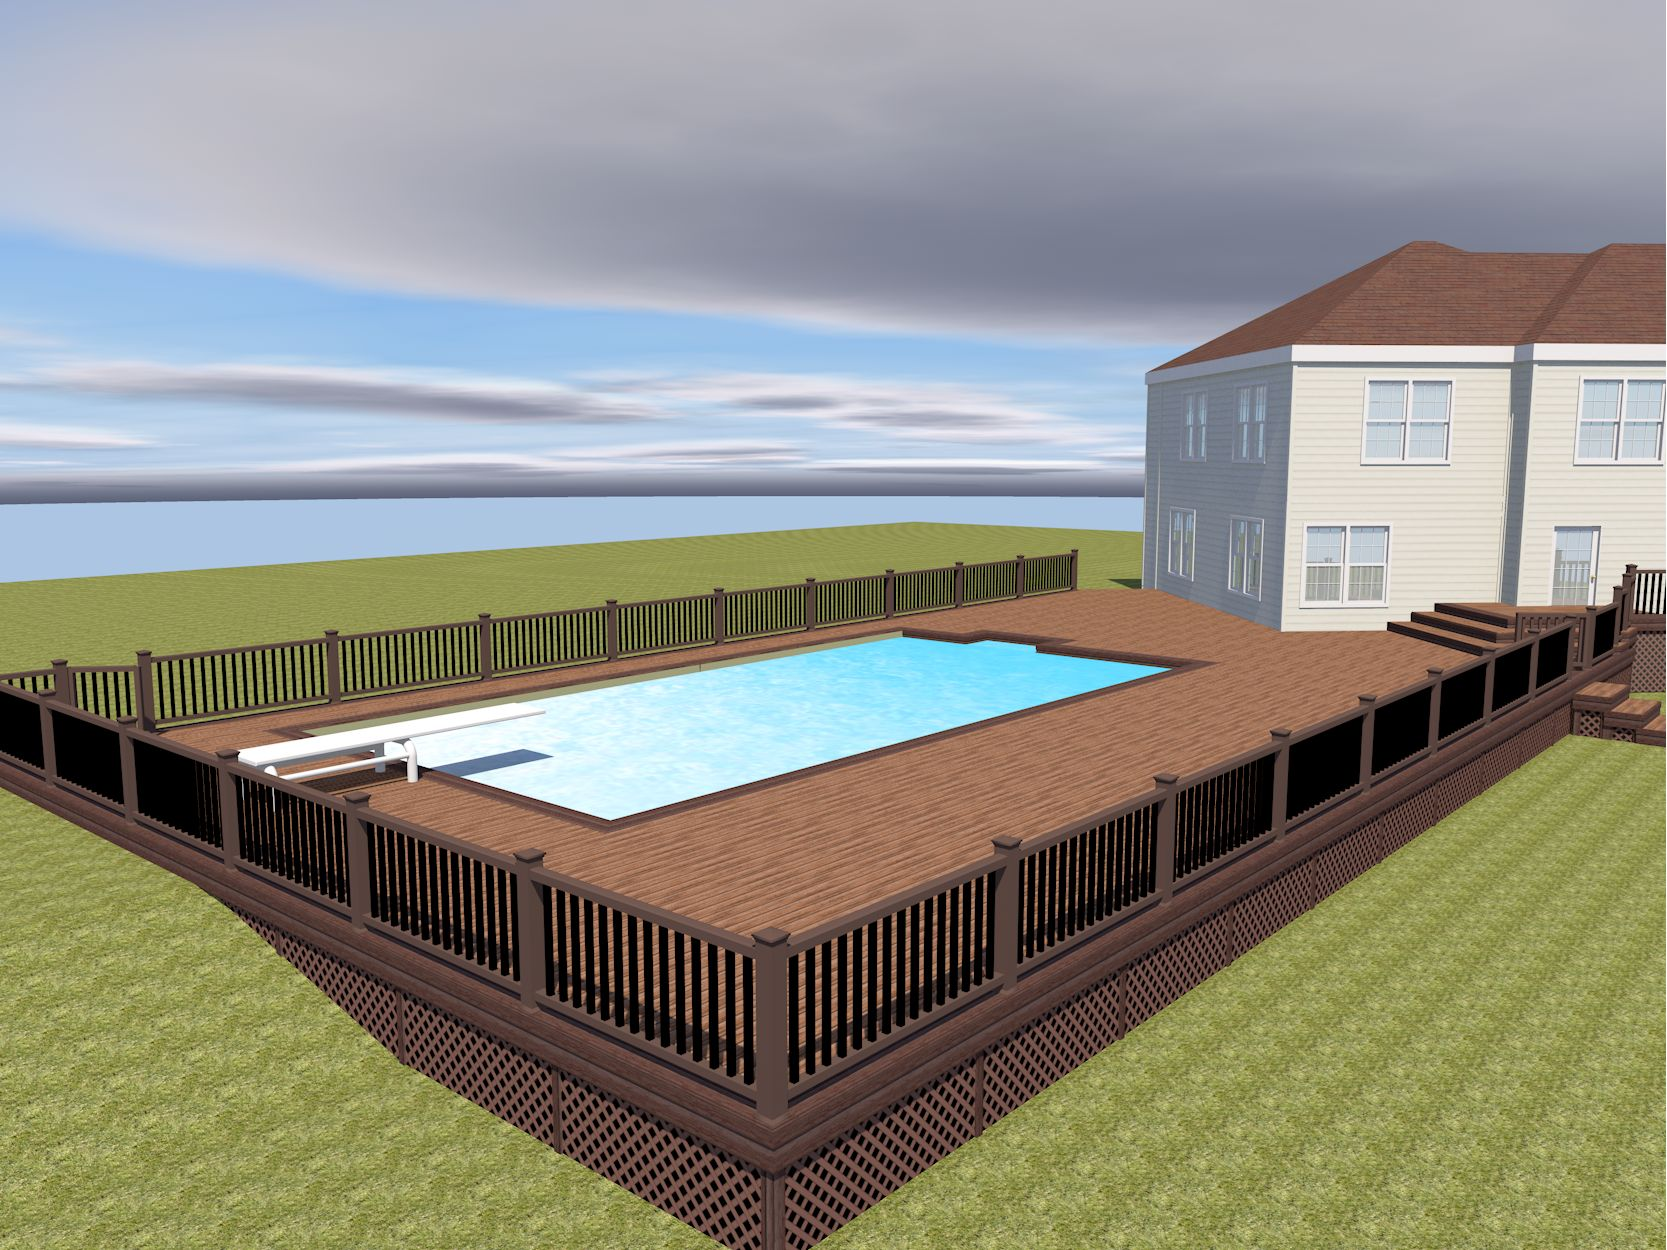 Trex Deck in East Hampton, NY - Picture 3495